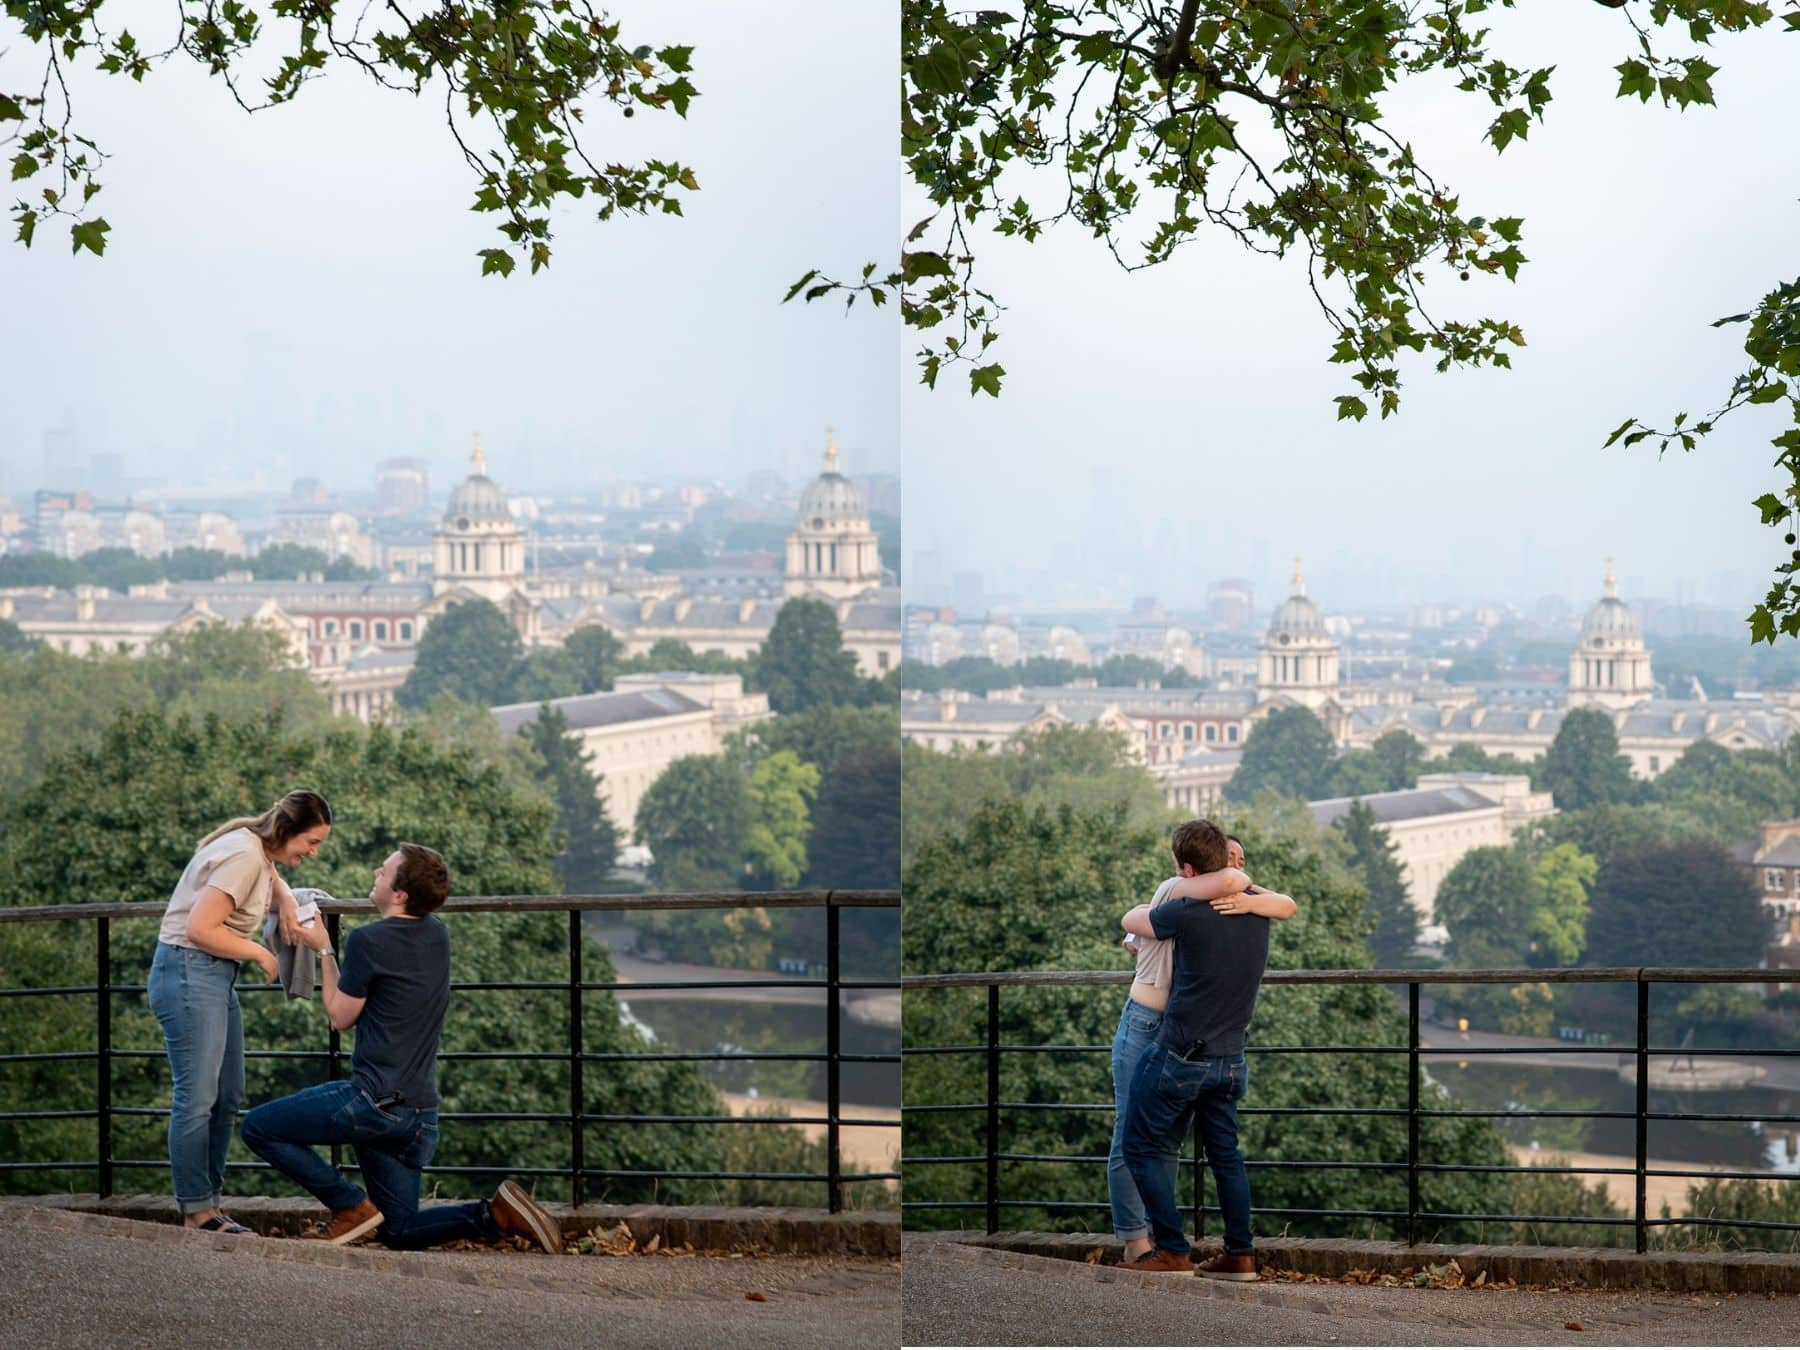 Photo of a beautiful wedding proposal in Greenwich park with views over London